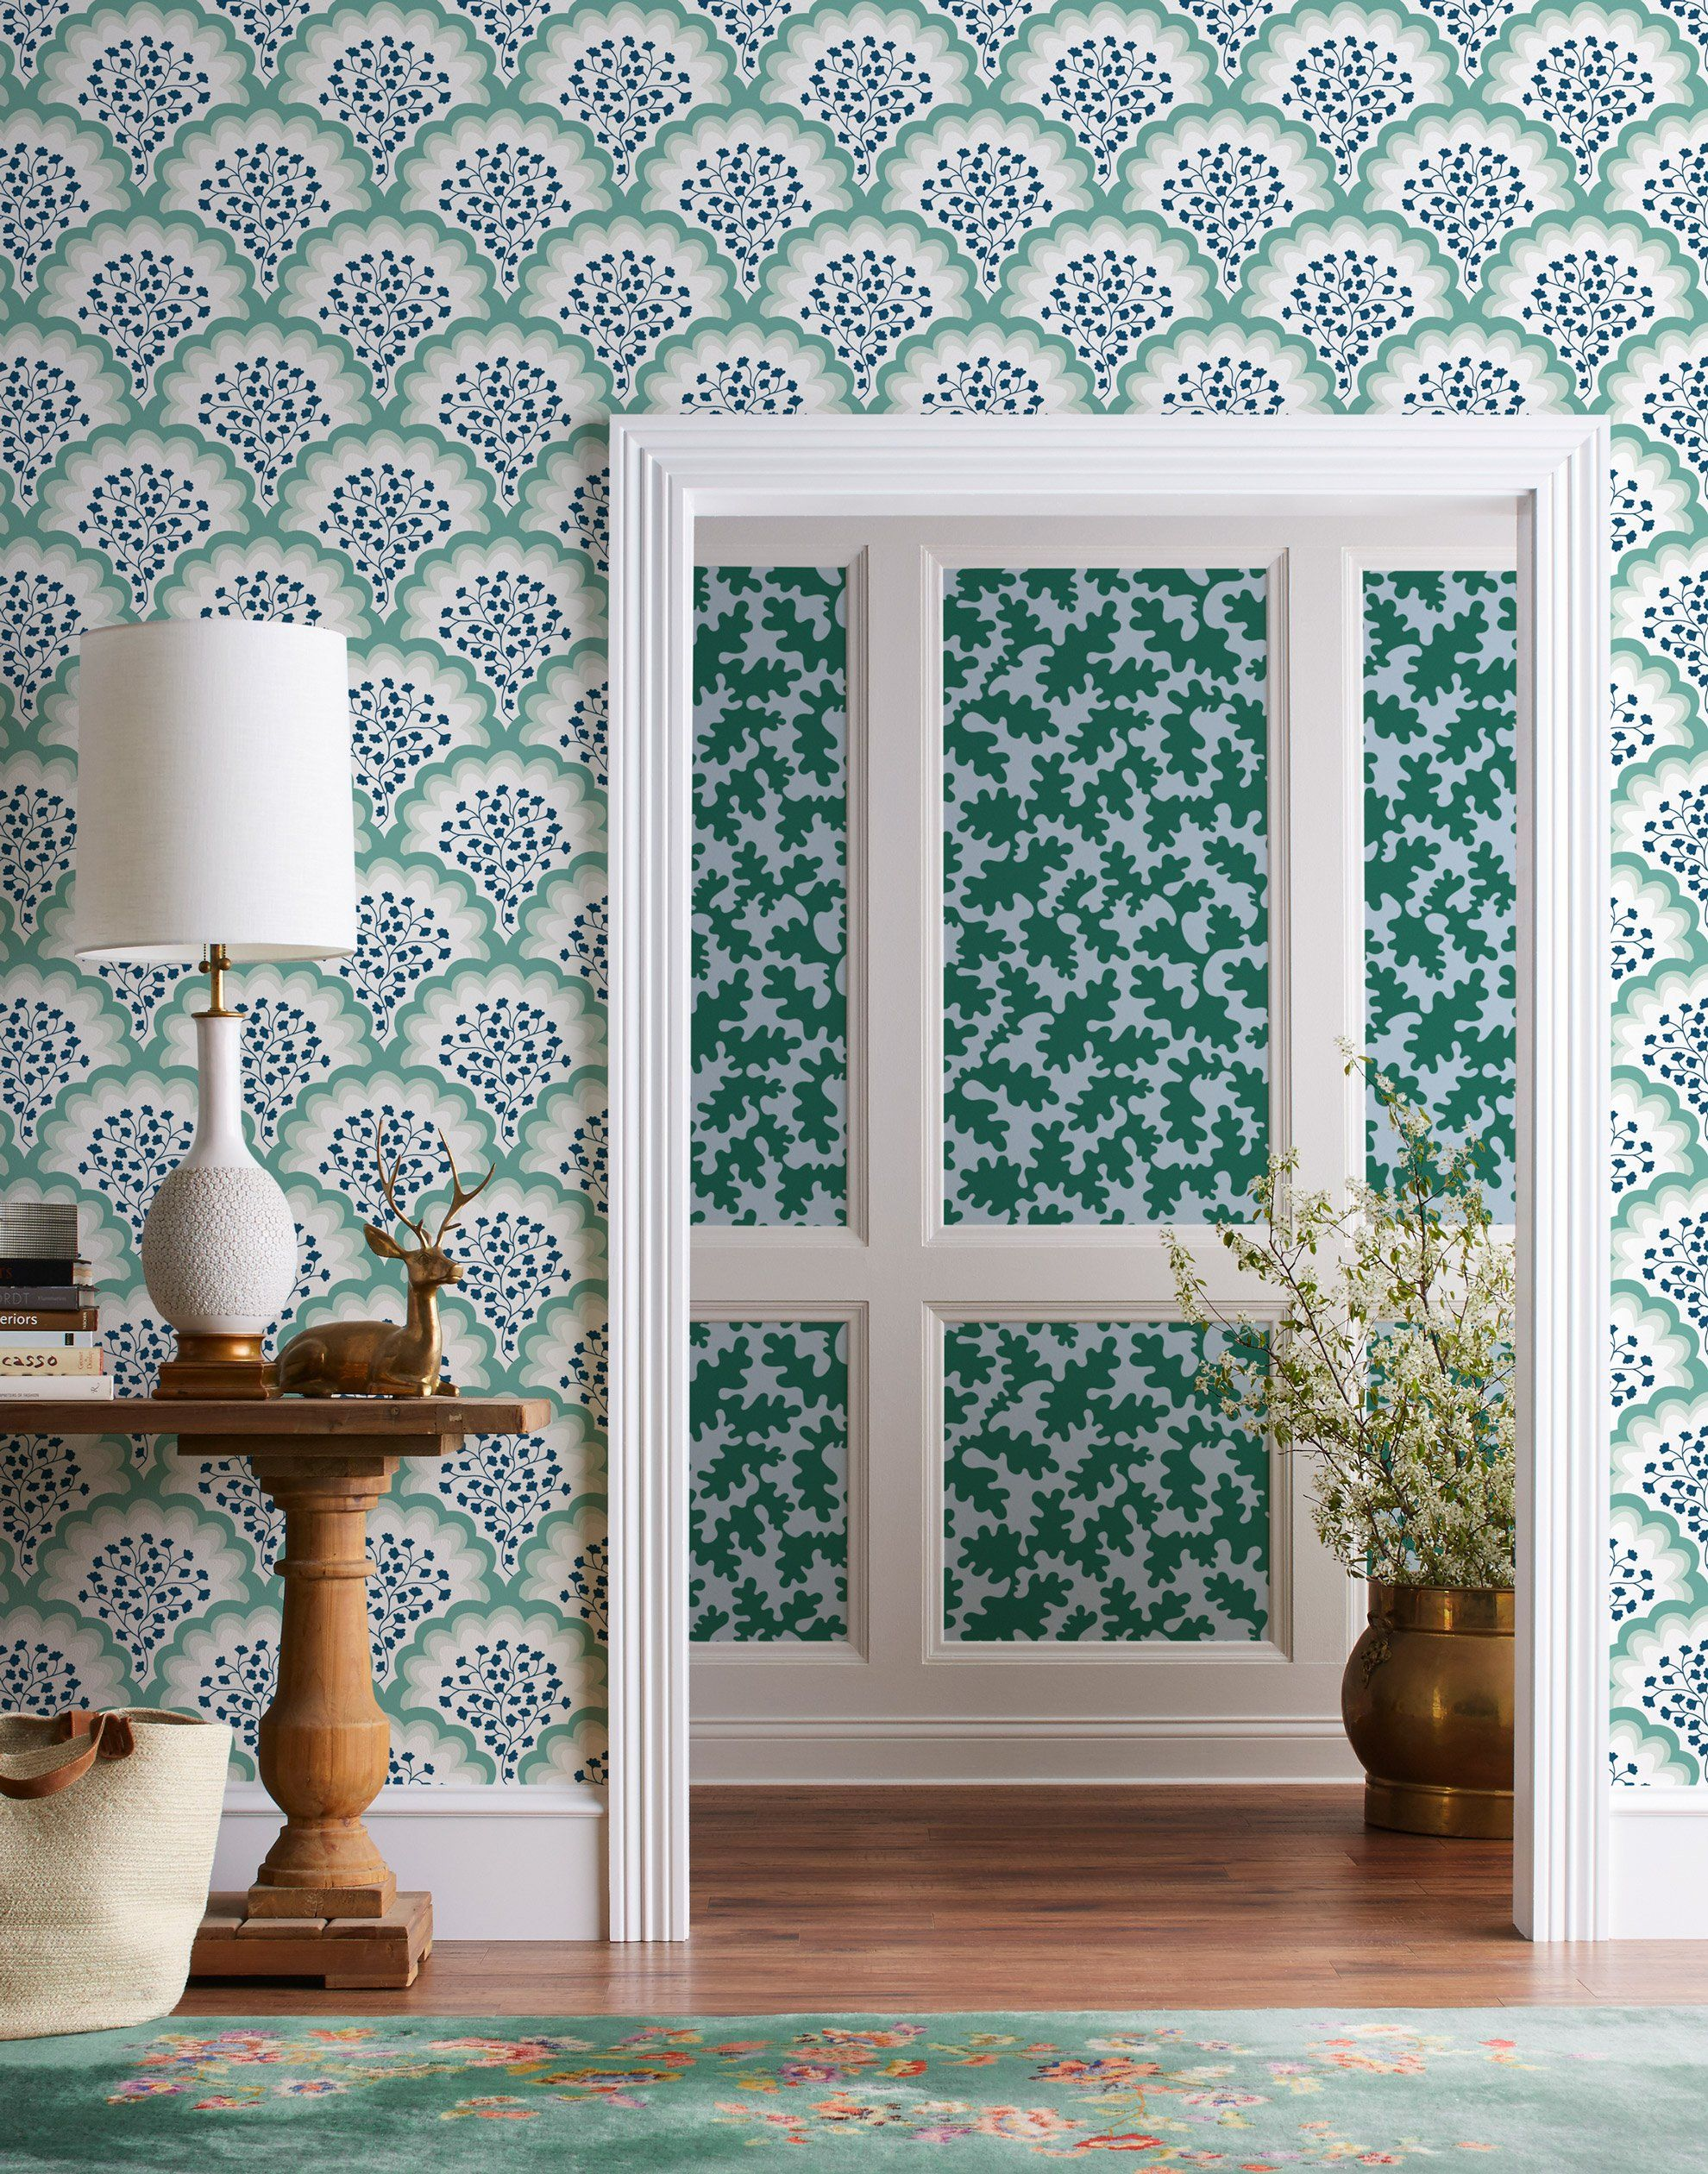 Best Places To Buy Custom Wallpaper By Price Point Modern Wallpaper Blue And White Wallpaper Interior Design Courses Online